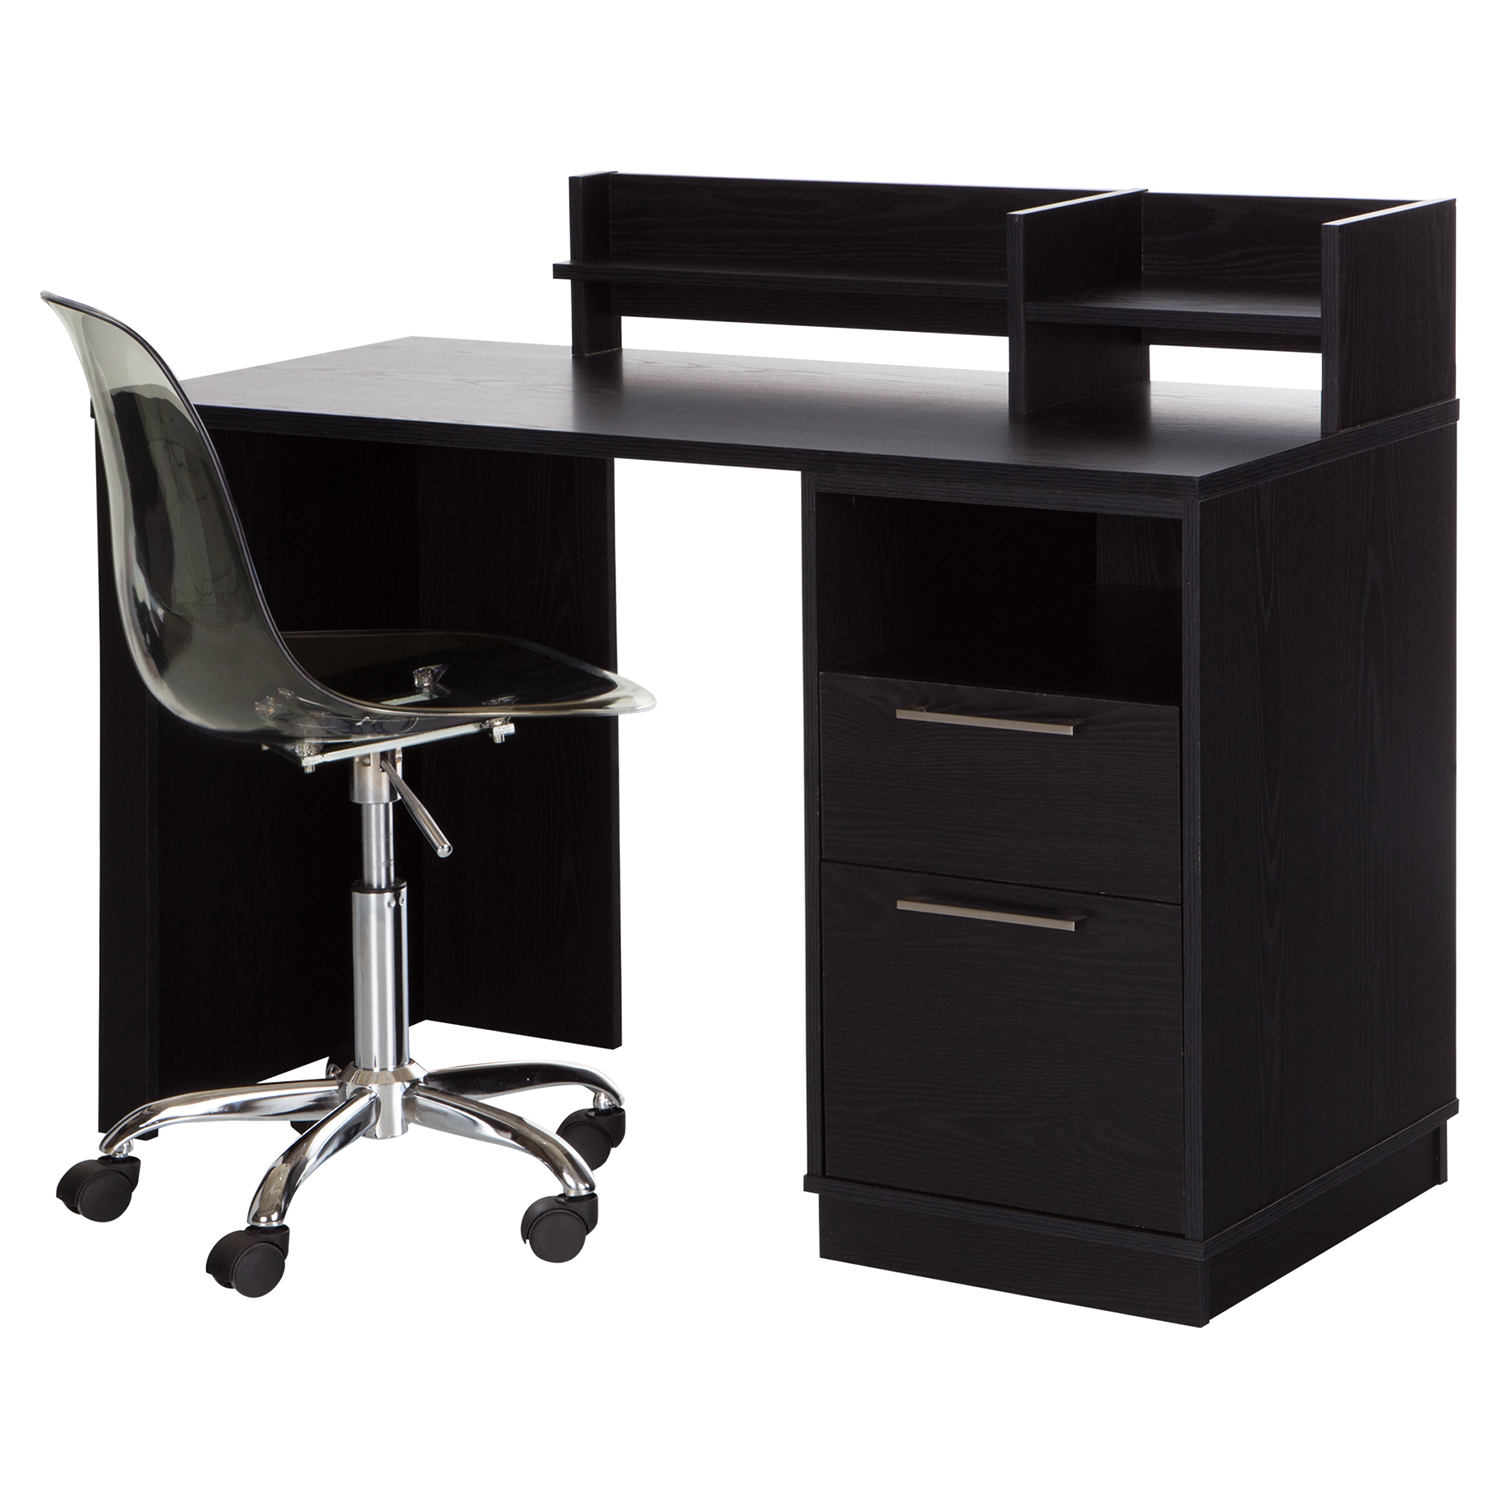 Academic Desk with Clear Office Chair - Black Oak